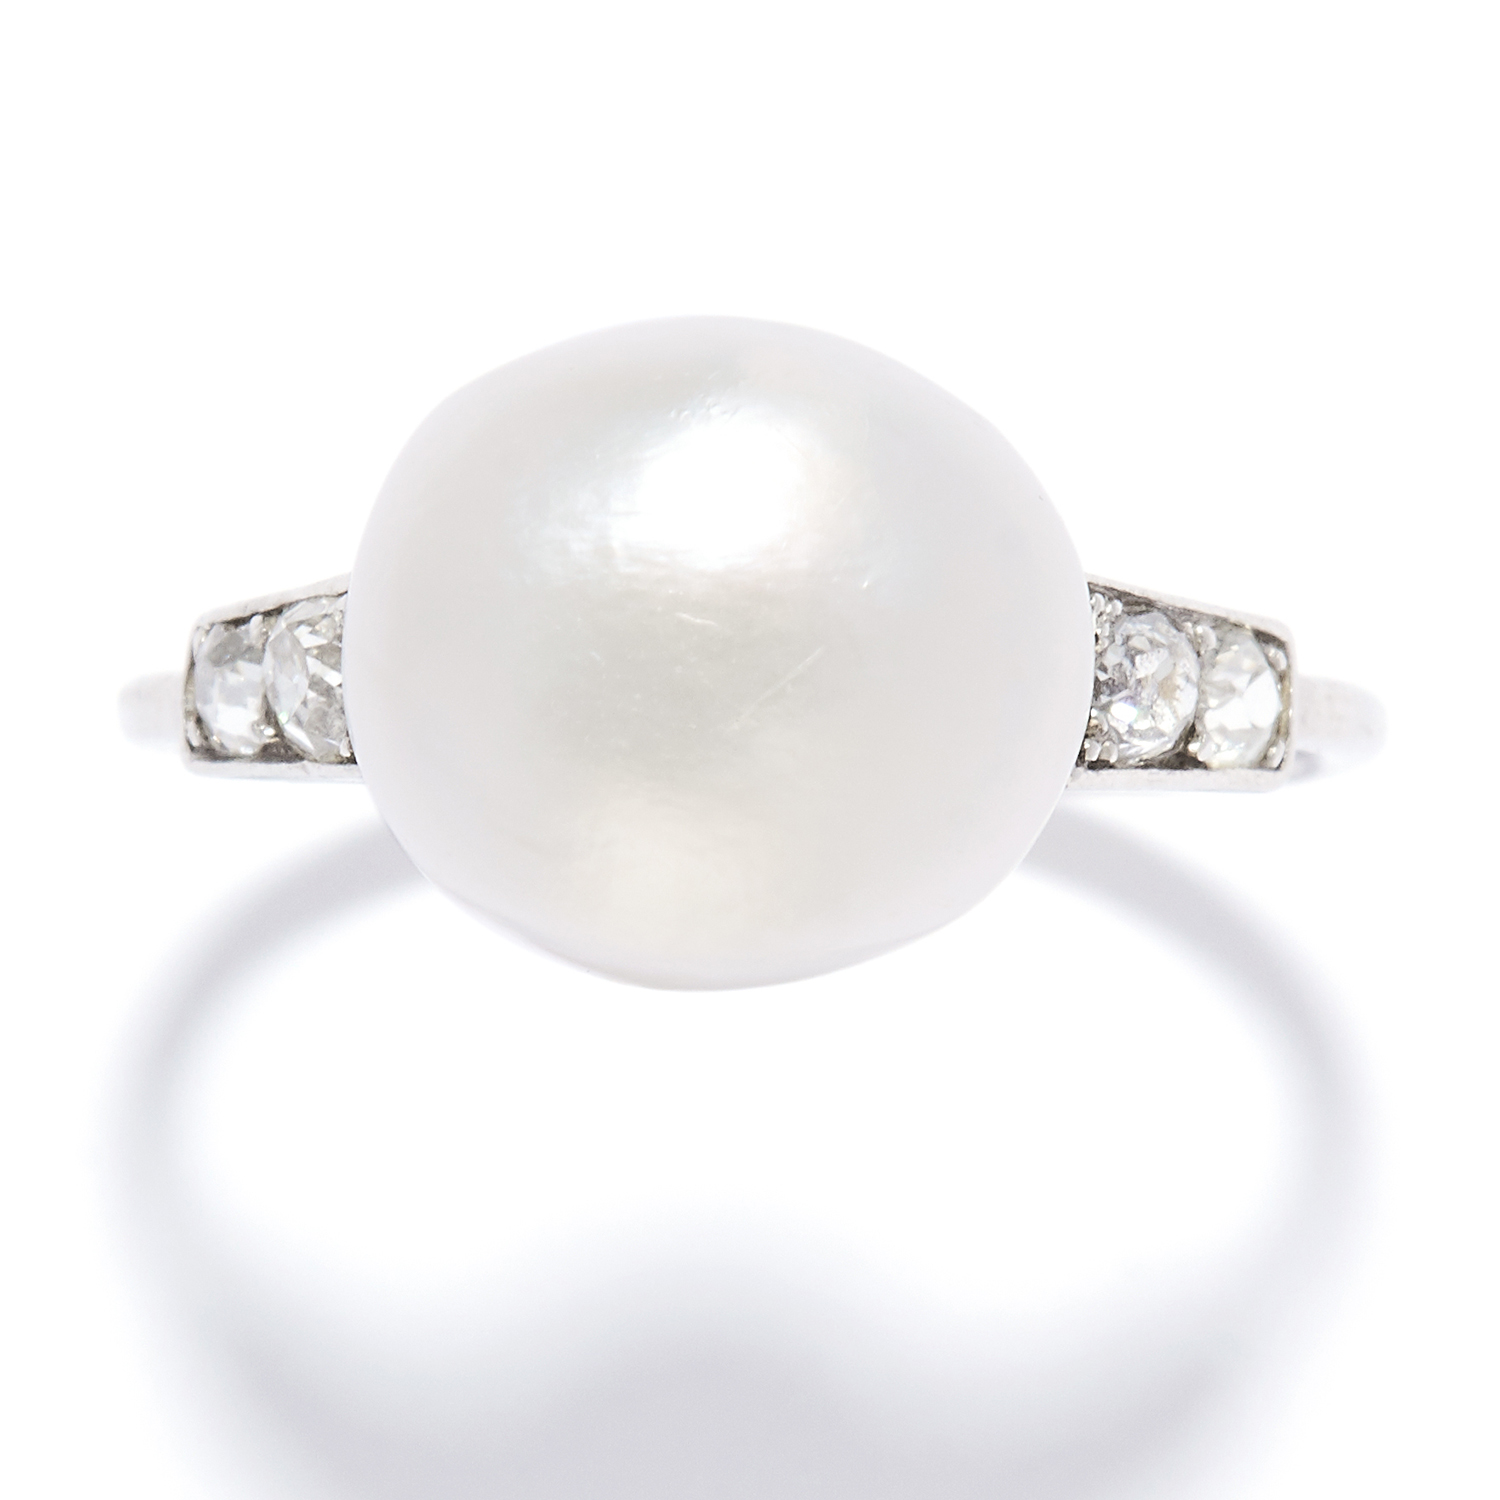 ANTIQUE NATURAL PEARL AND DIAMOND RING in platinum, the pearl of 11.3mm flanked by pairs of old